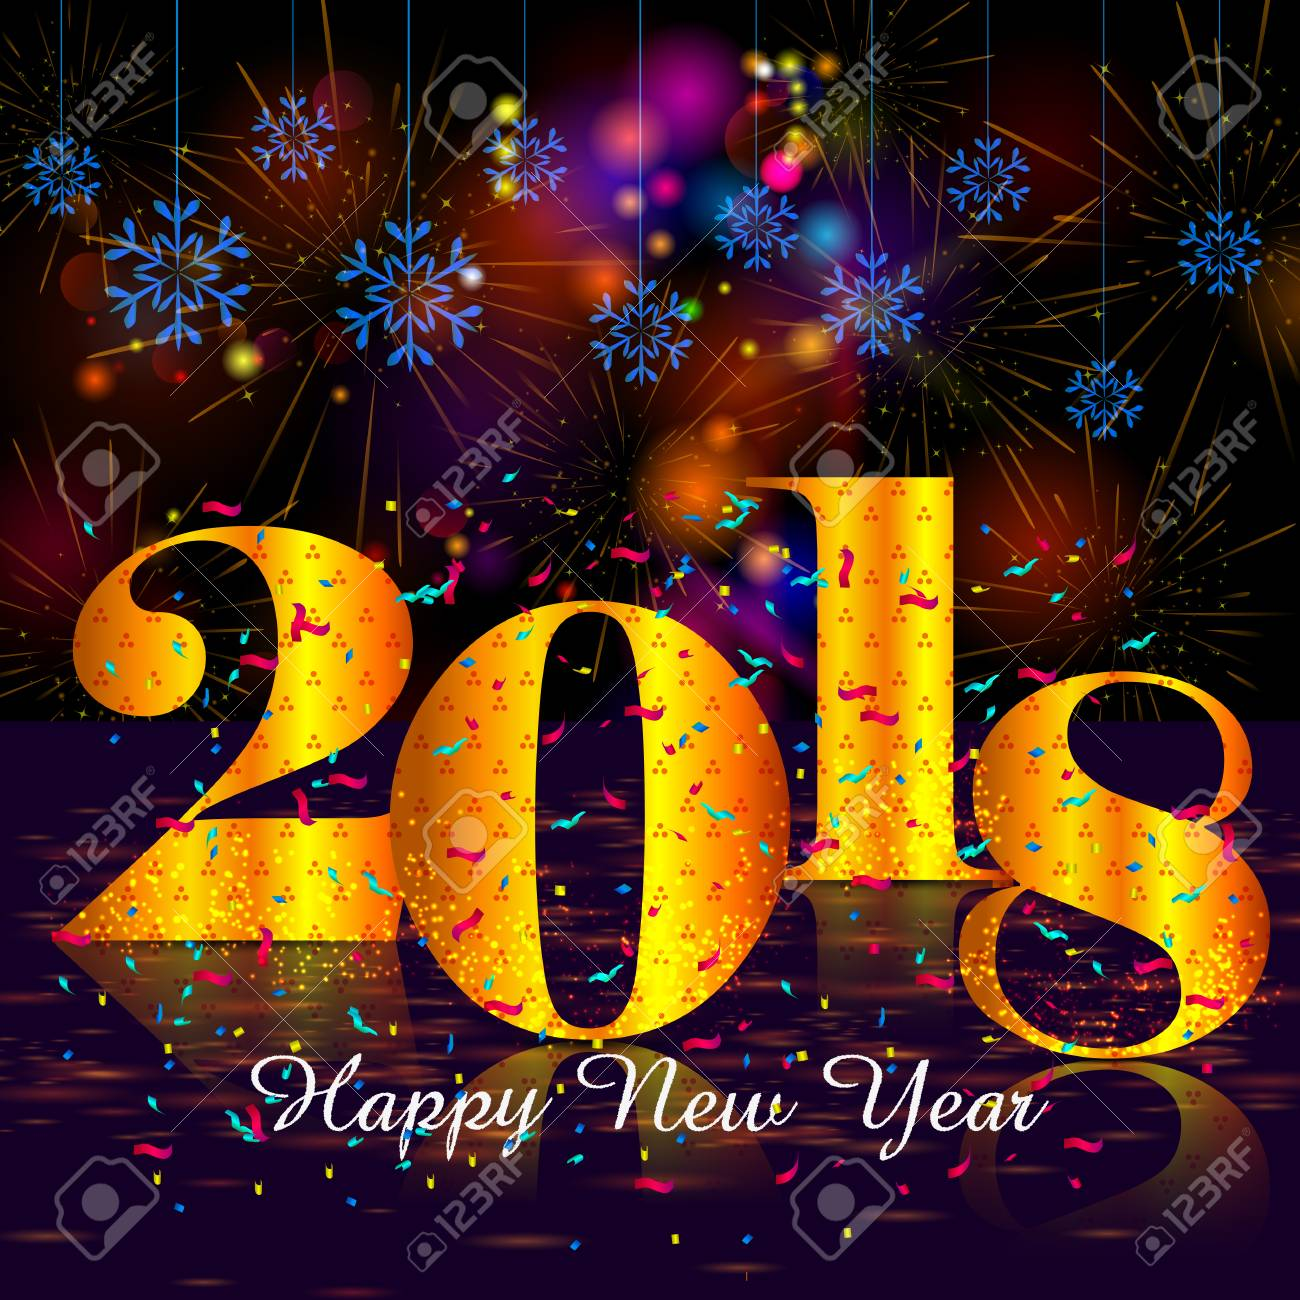 happy new year 2018 wishes greeting card template background design in vector stock vector 90306540